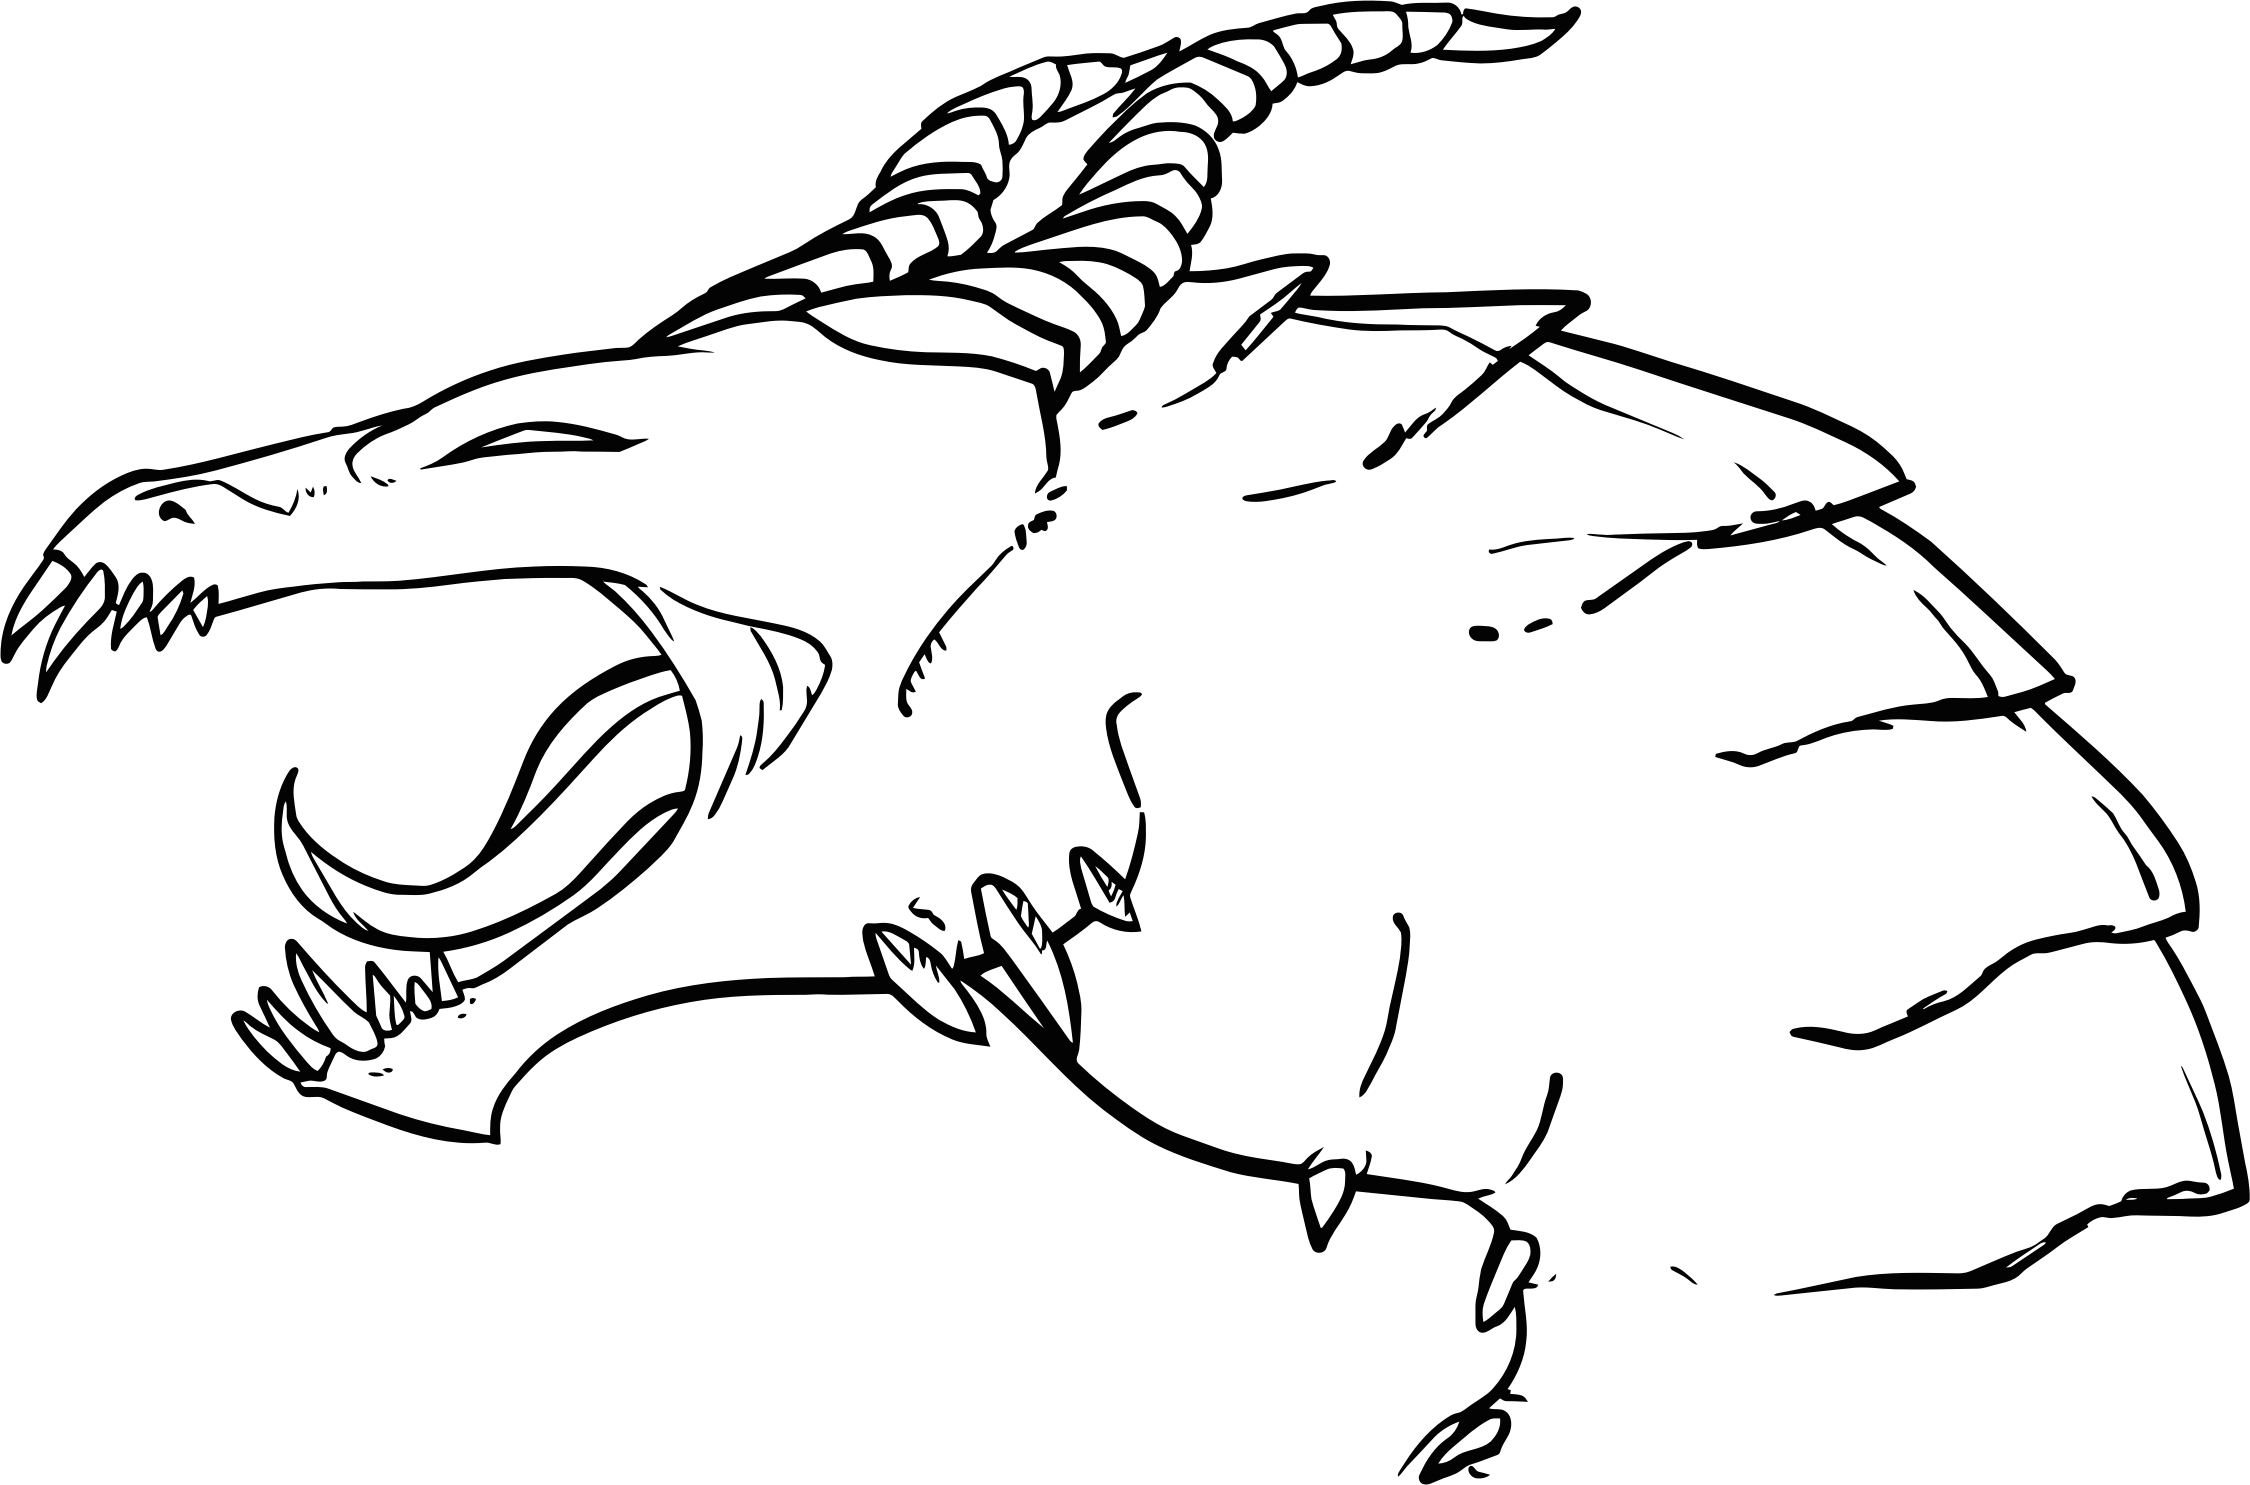 Line Drawing Dragon : Clipart dragon line art